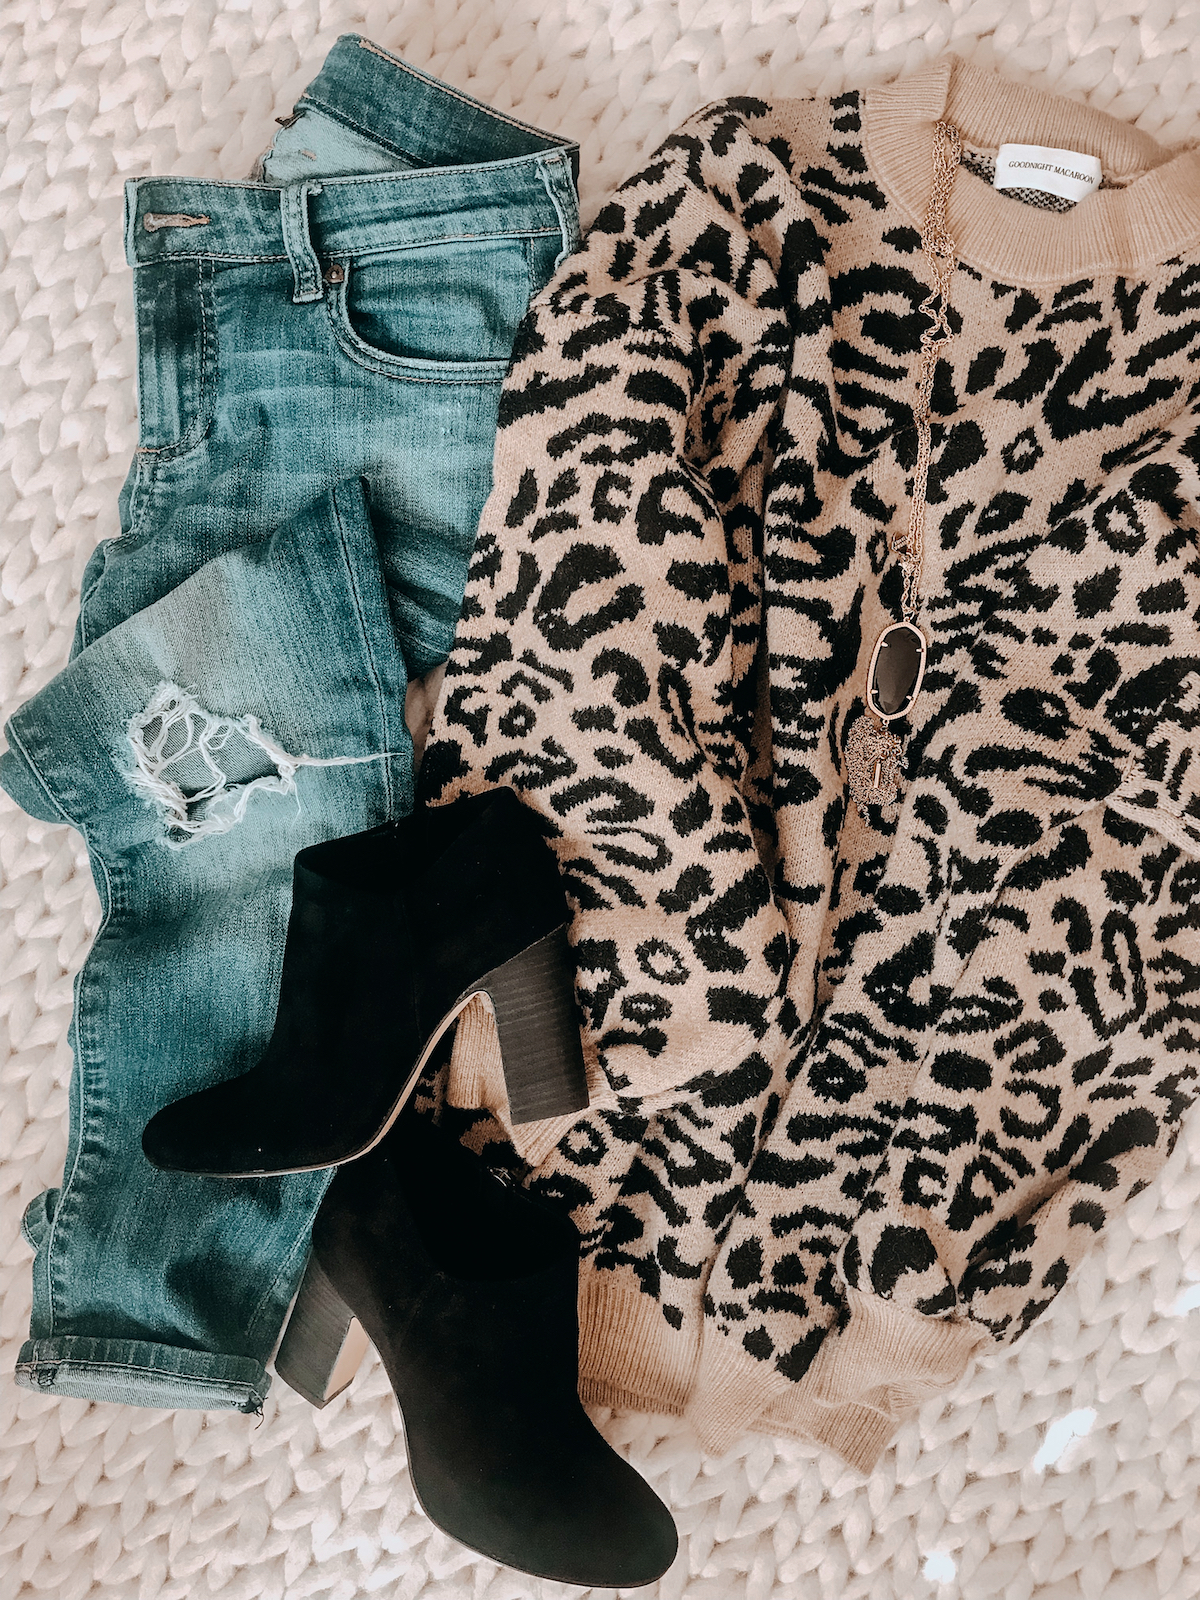 Winter outfit - leopard sweater jeans and black booties